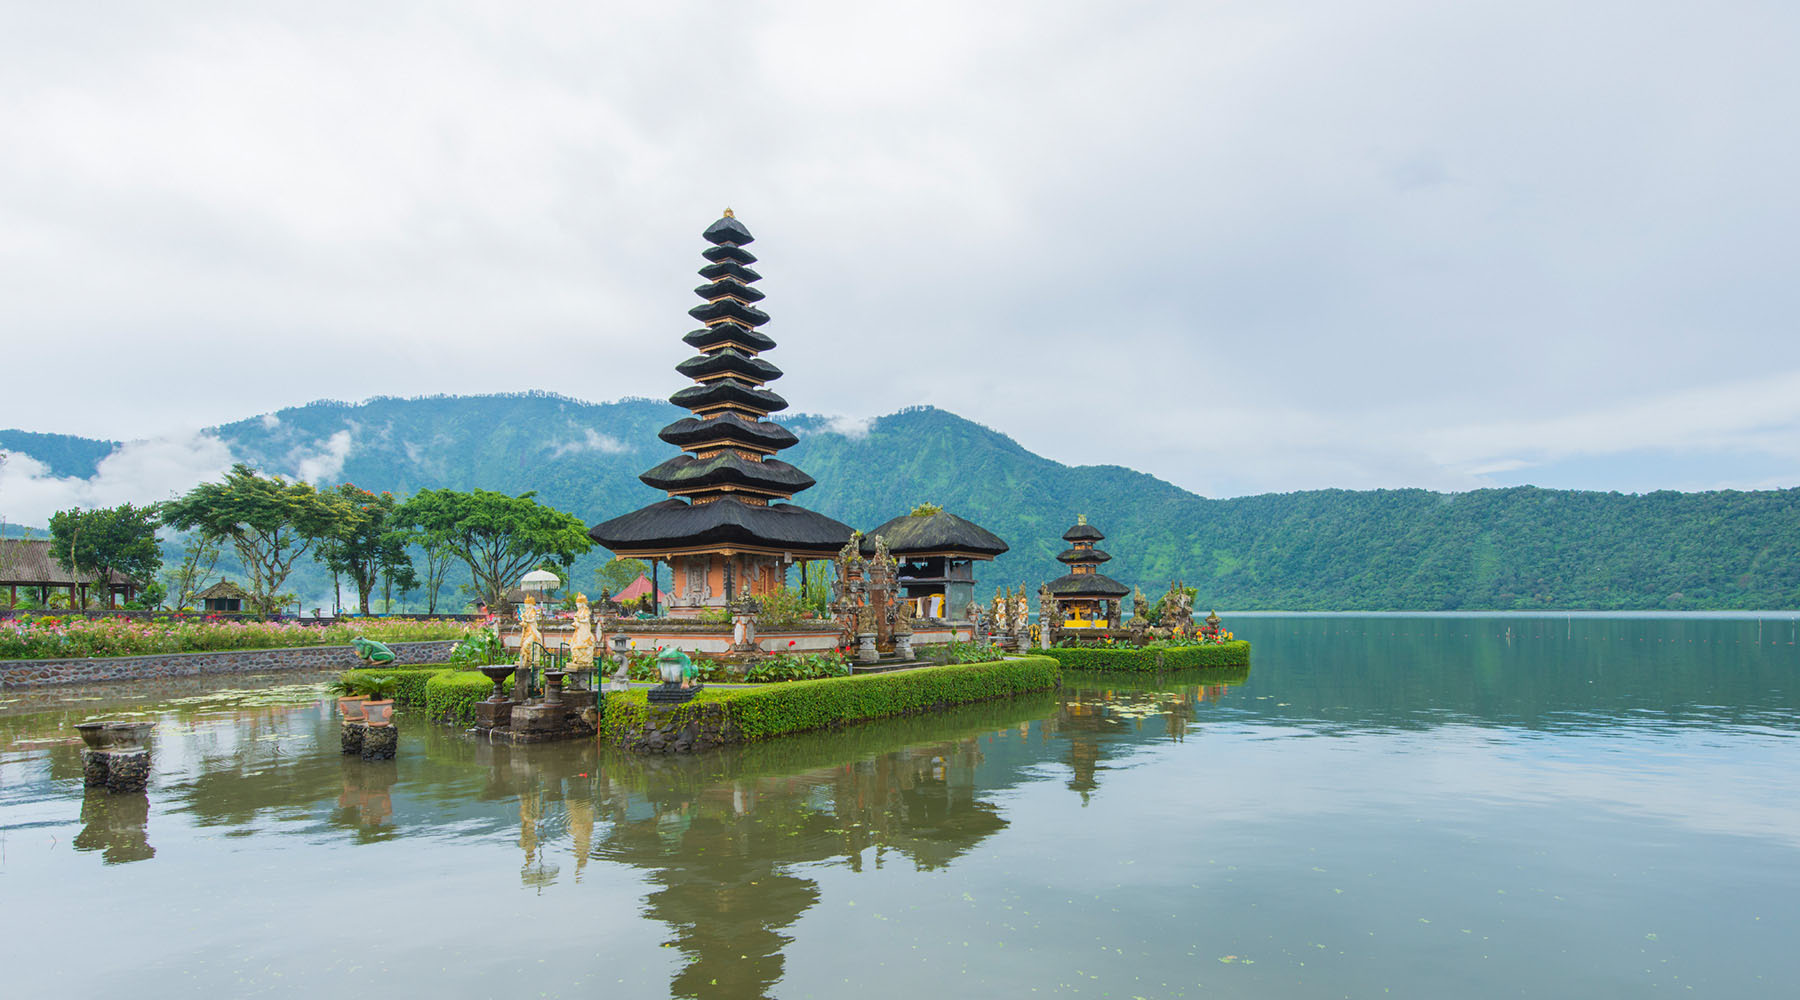 With a stop in Bali on the World Journey, you'll have ample opportunity to take in the truly enchanting music that is central to Indonesian culture.